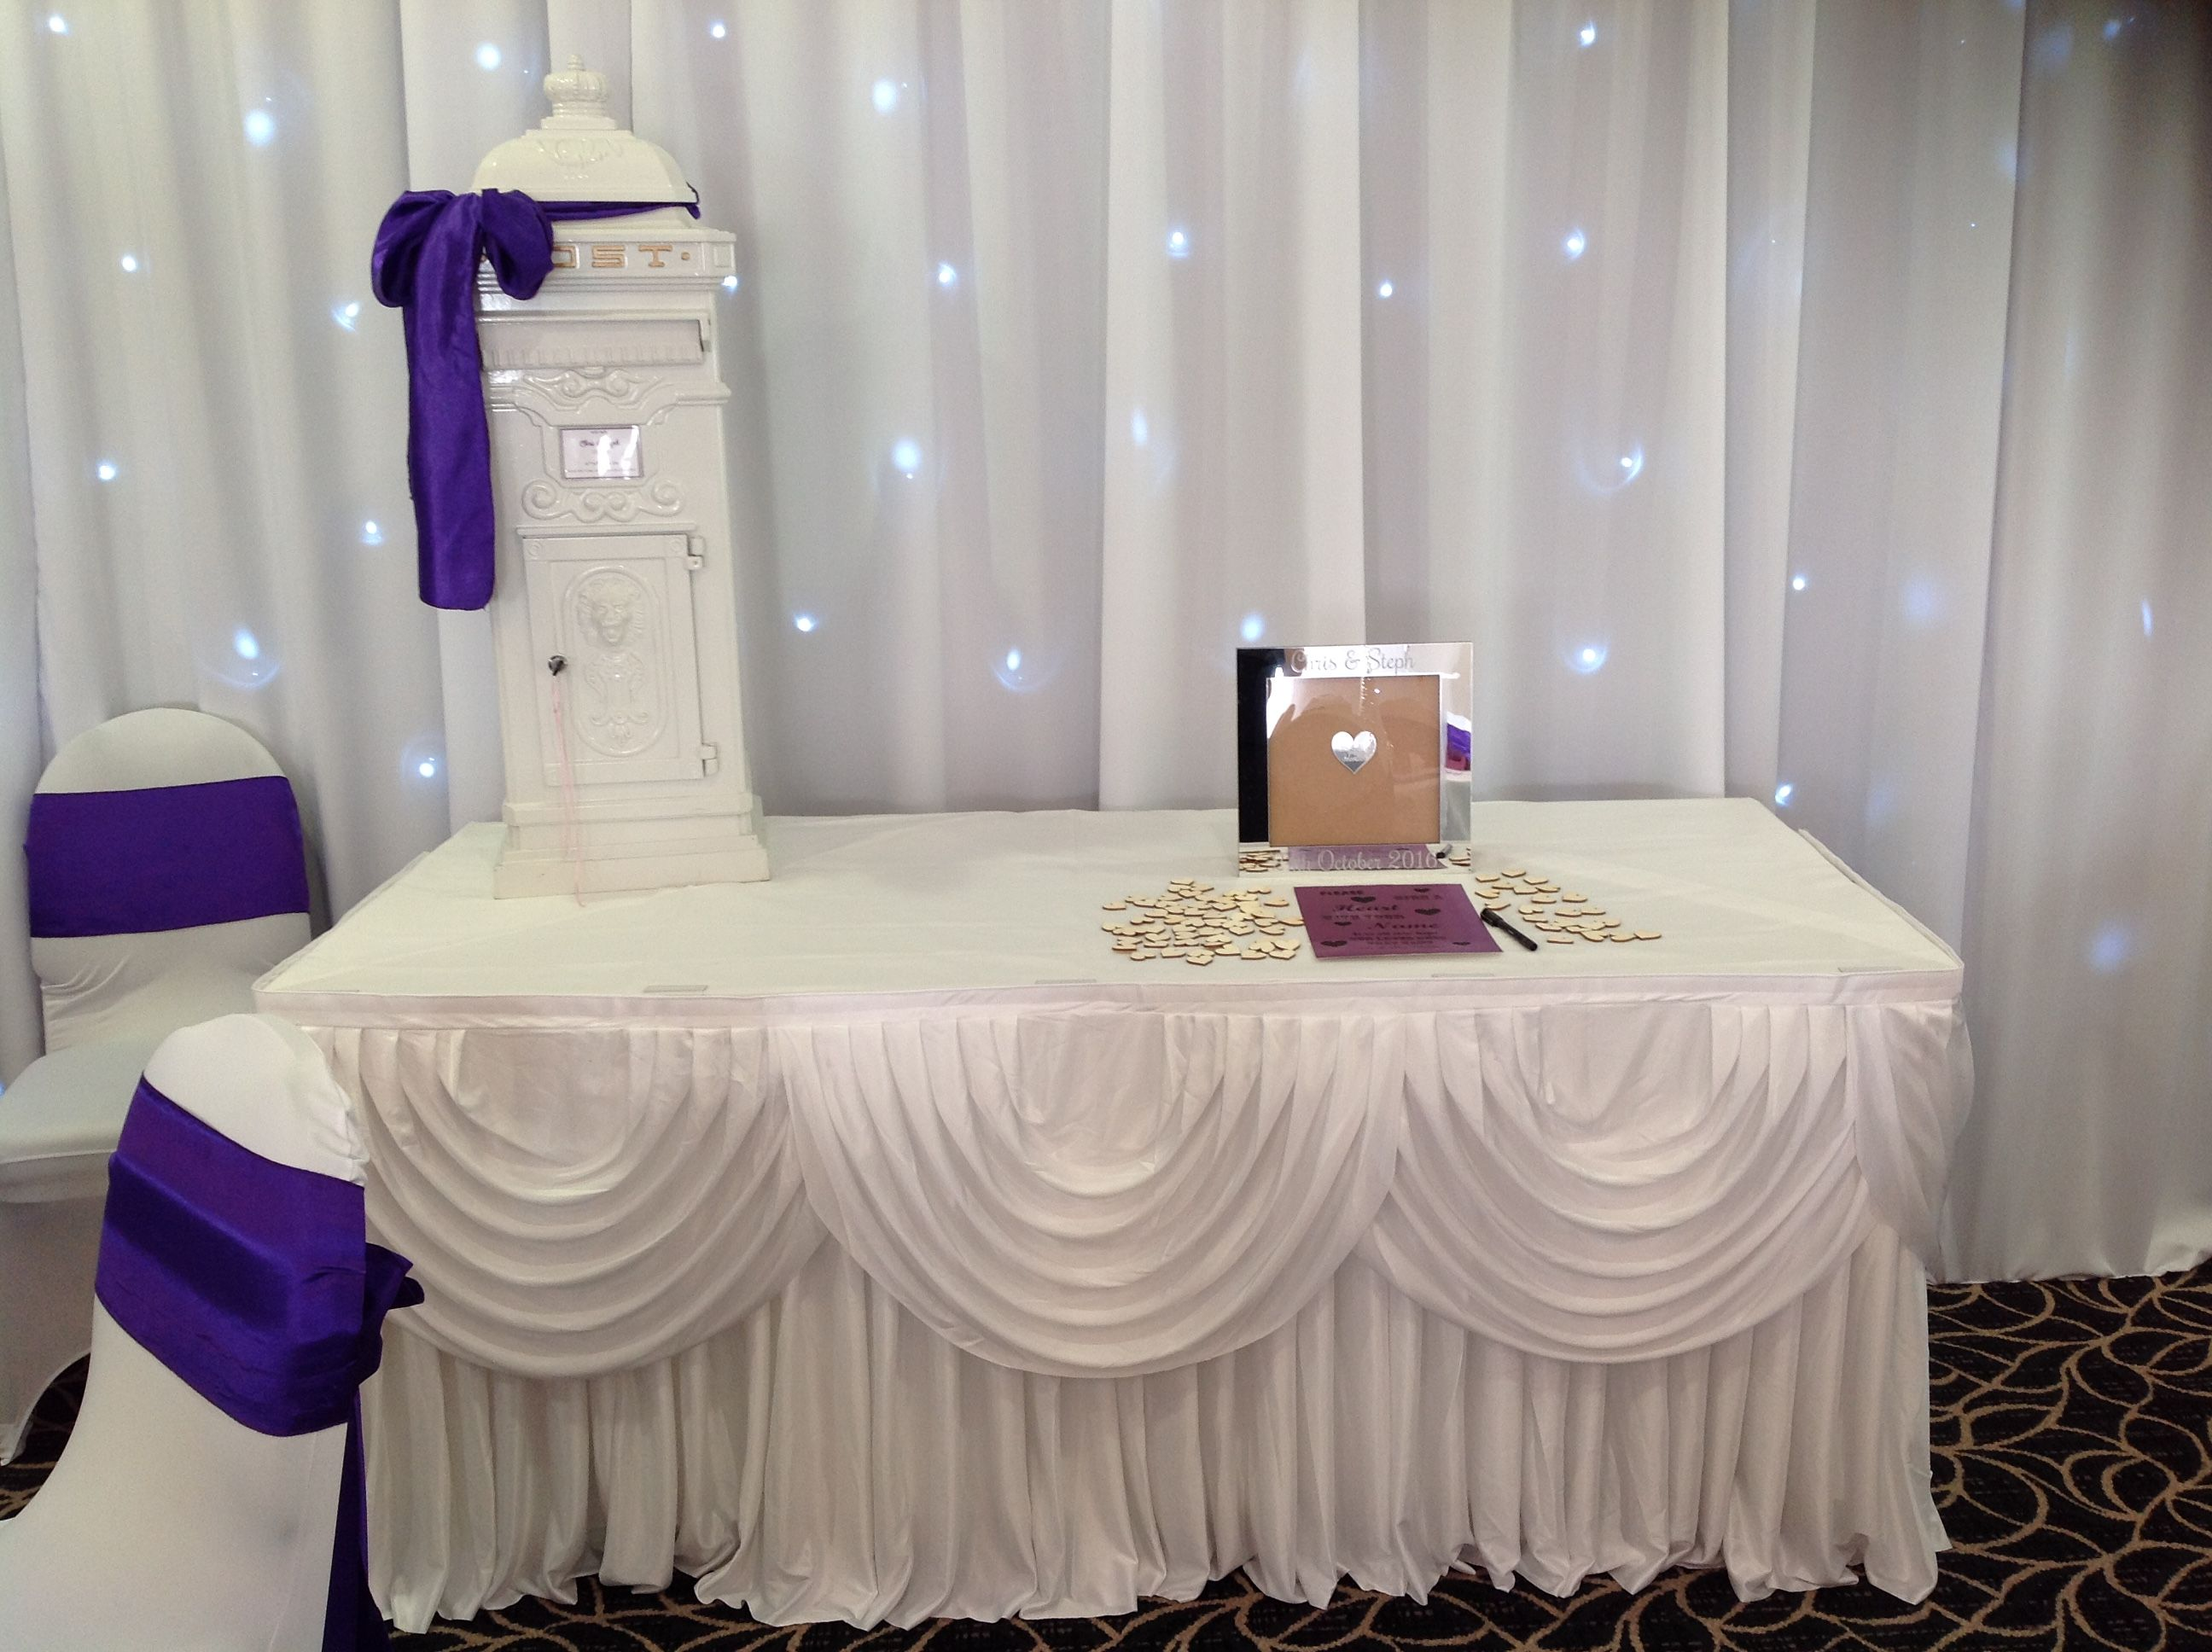 chair cover hire tamworth orange louis ghost post box and gift table swags available to from make it special events atherstone